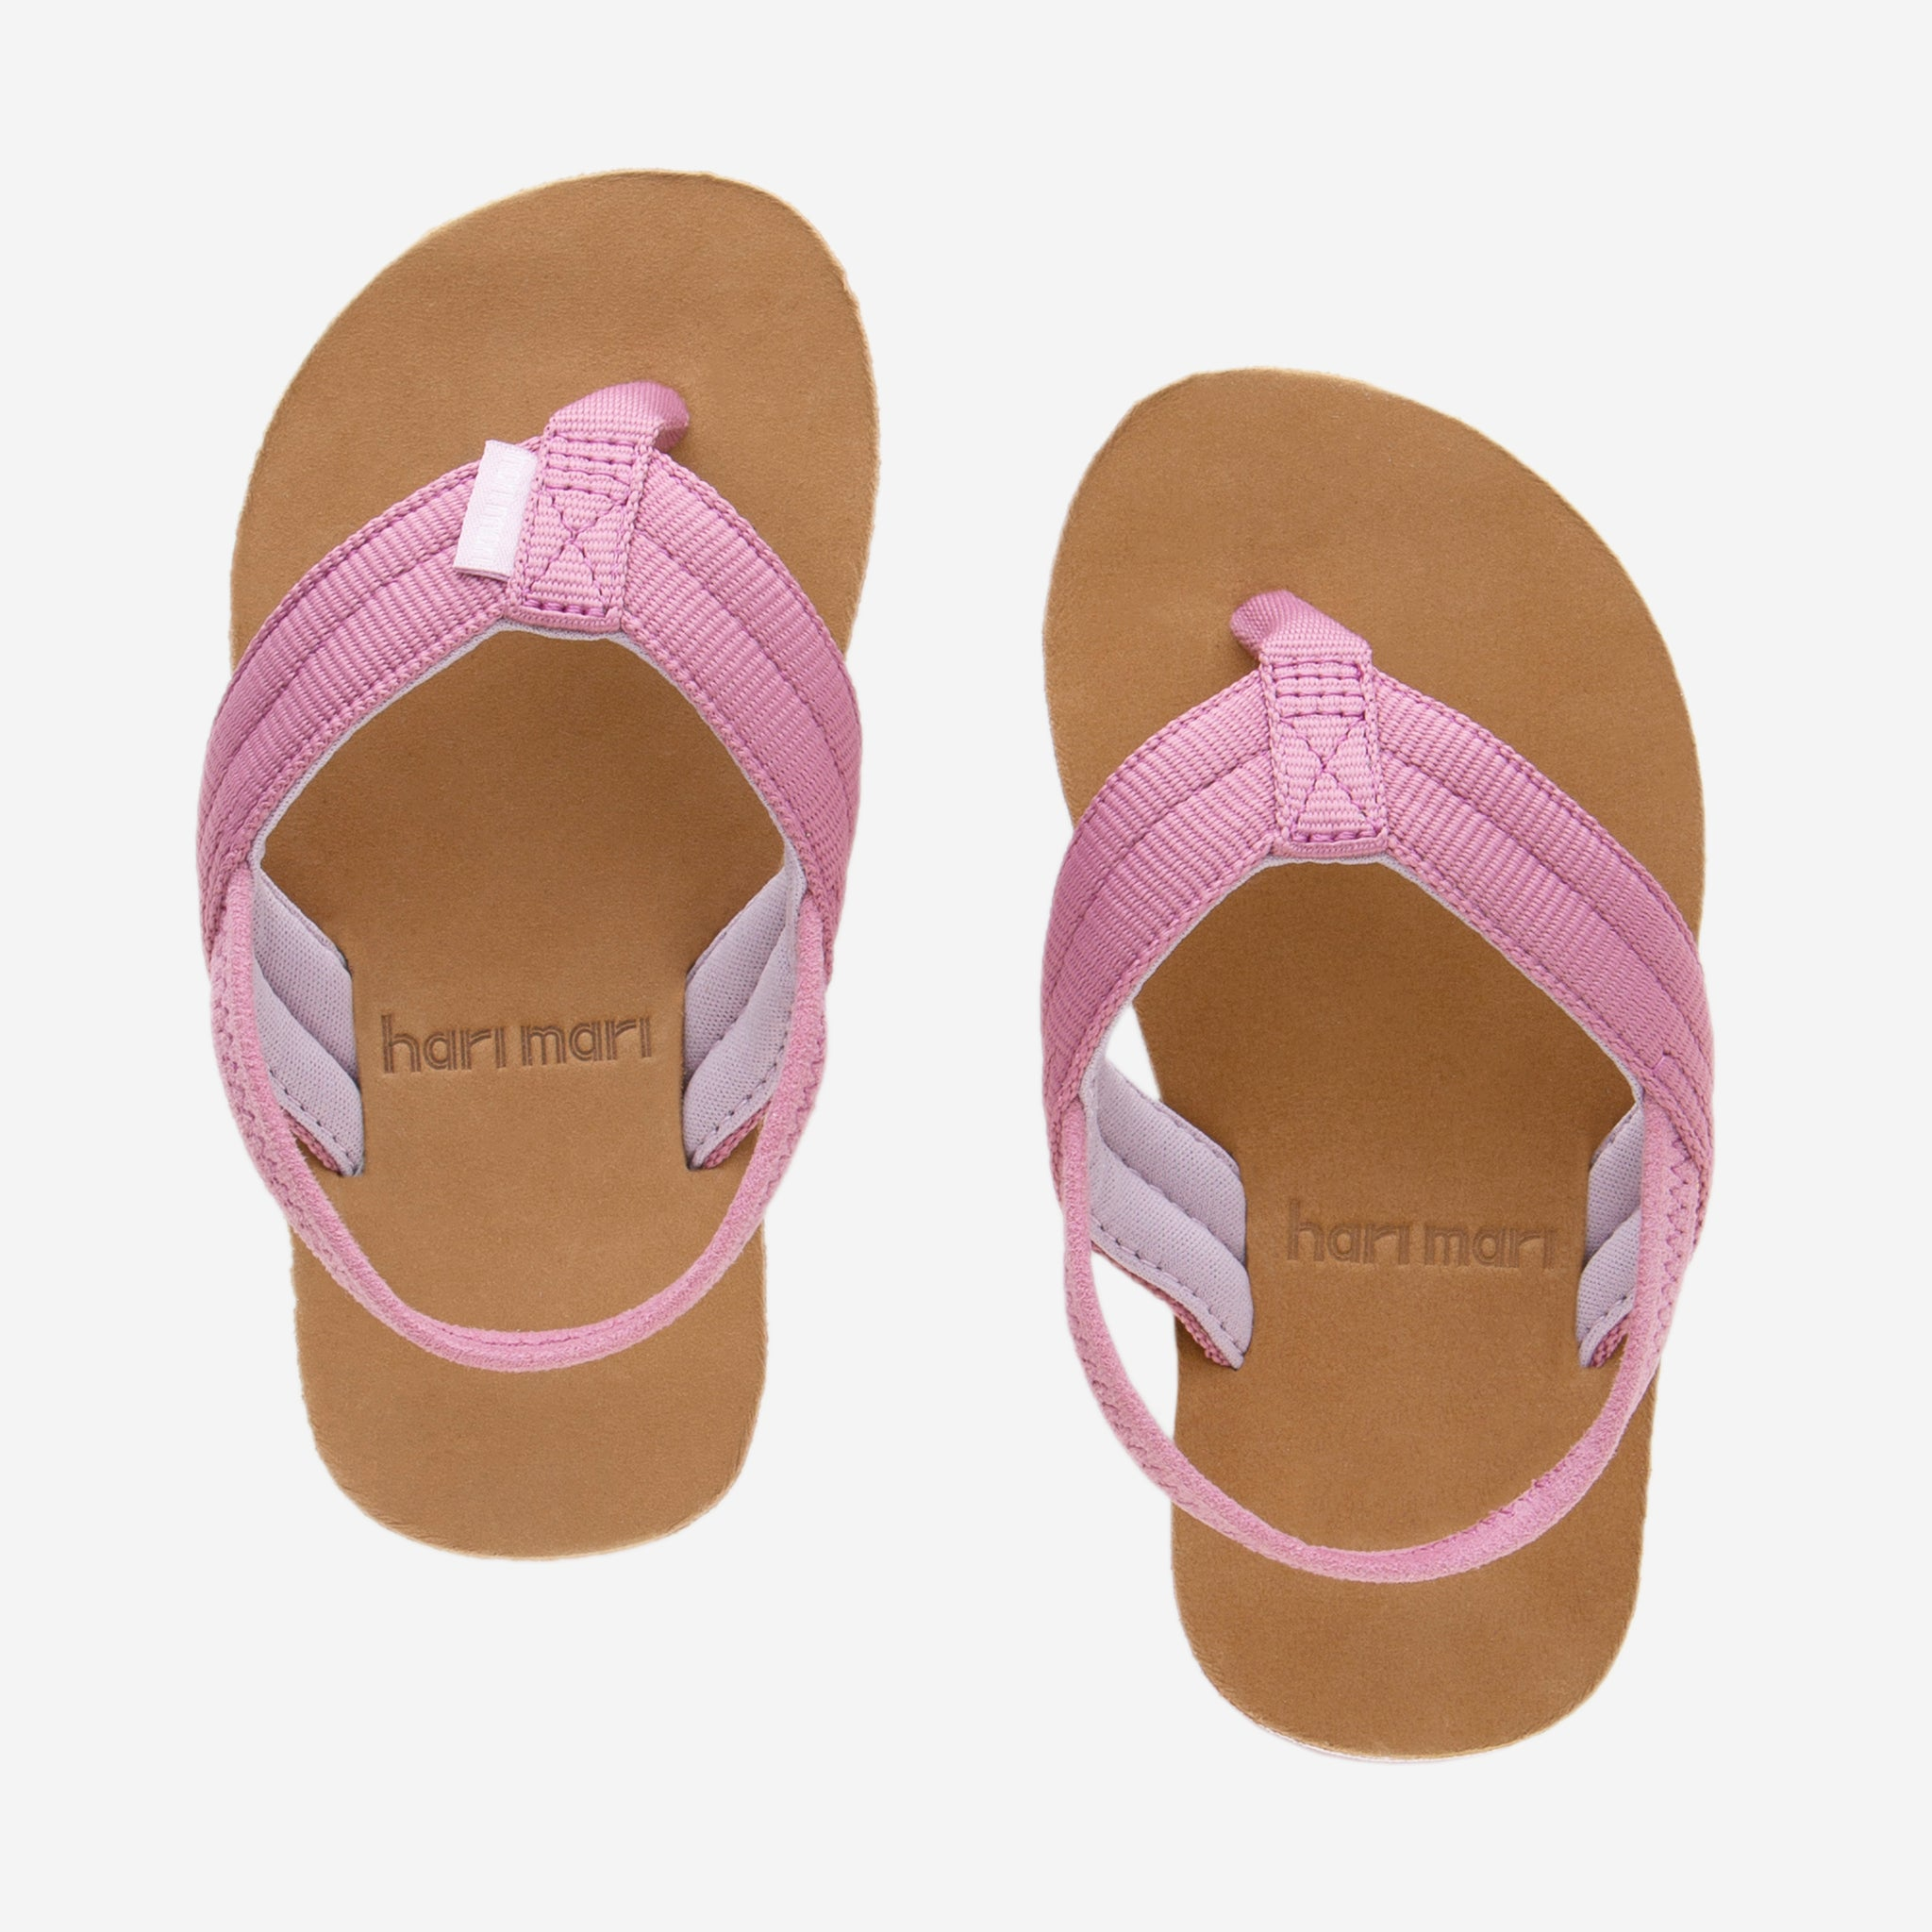 Hari Mari Kids Scouts in Rose/Sand on white background